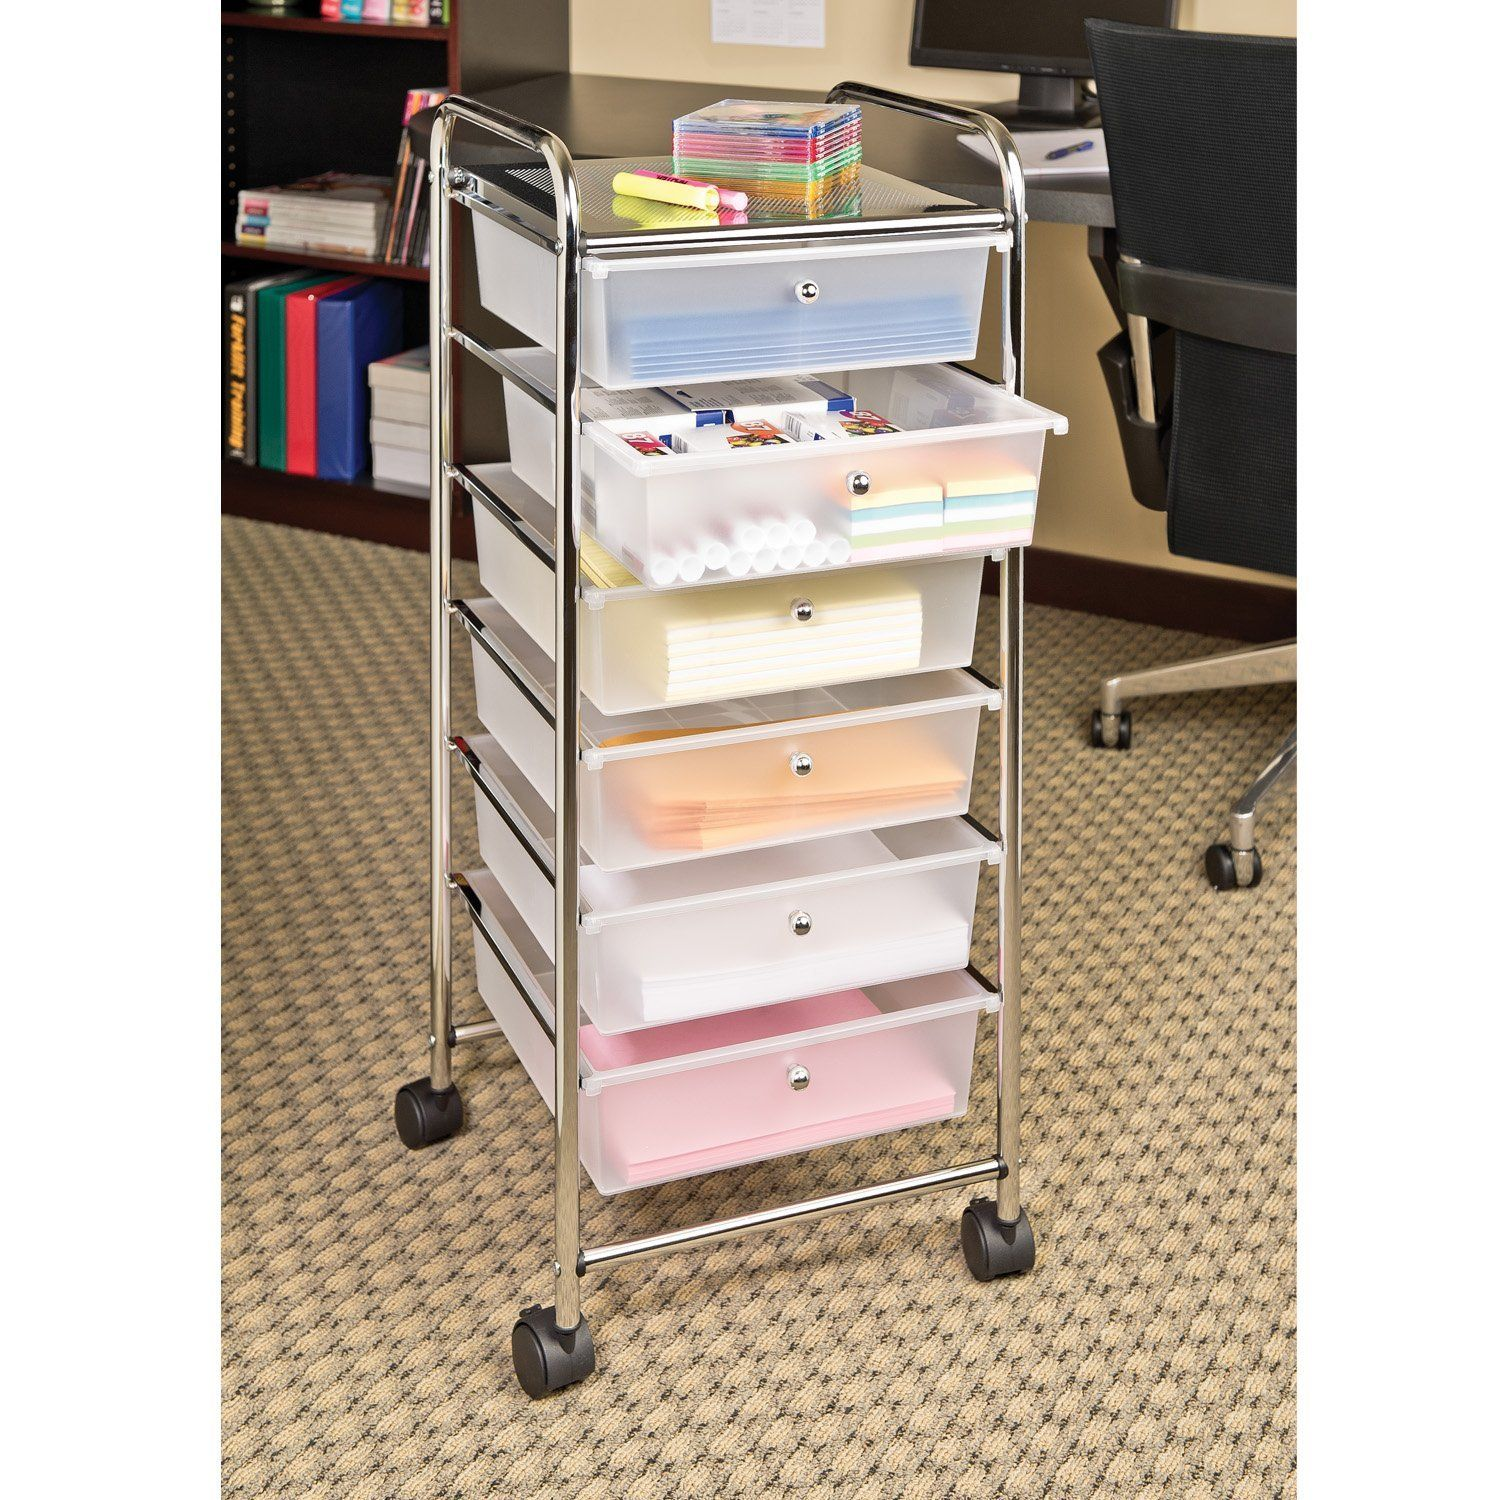 Seville classics large drawer storage bin organizer cart frosted